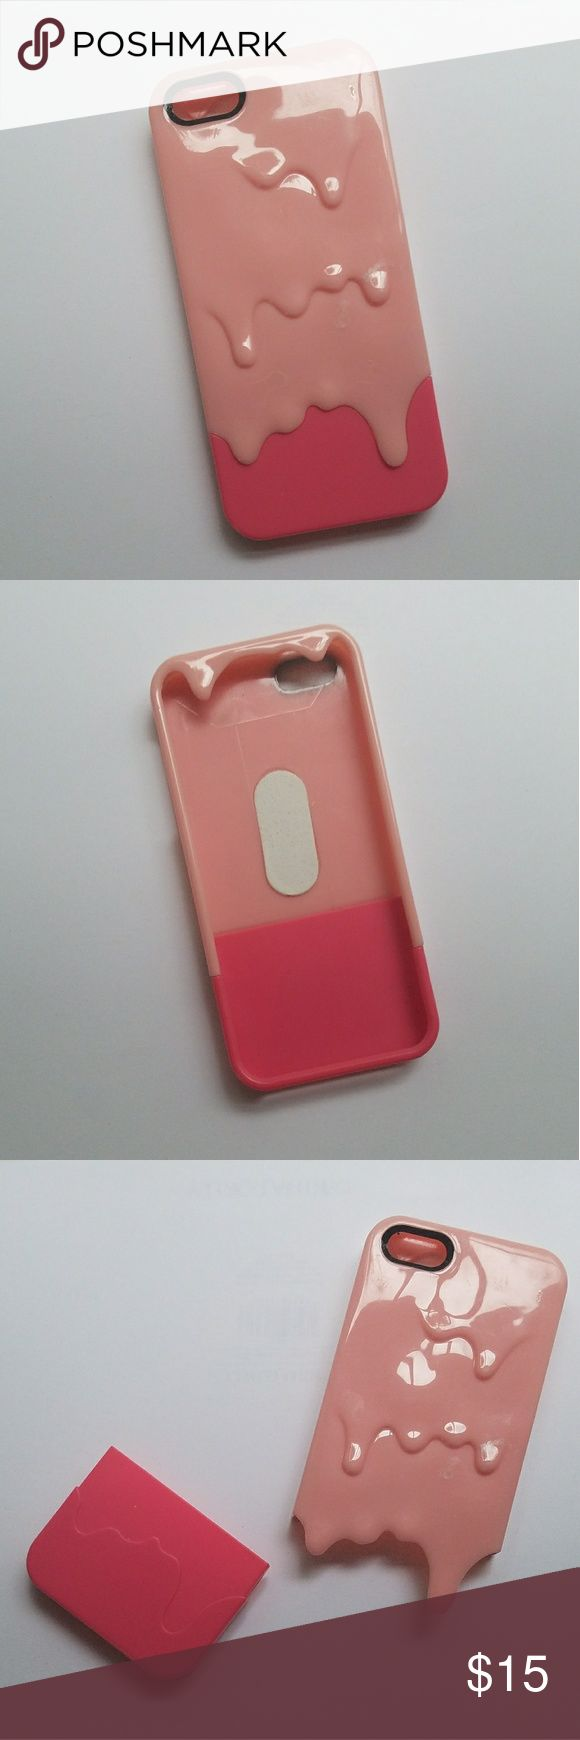 """iPhone 5S or 6 SE case Cute pink """"slime"""" case with interchangeable parts, fits iPhone 5S or iPhone 6 SE, lightly used Accessories Phone Cases"""